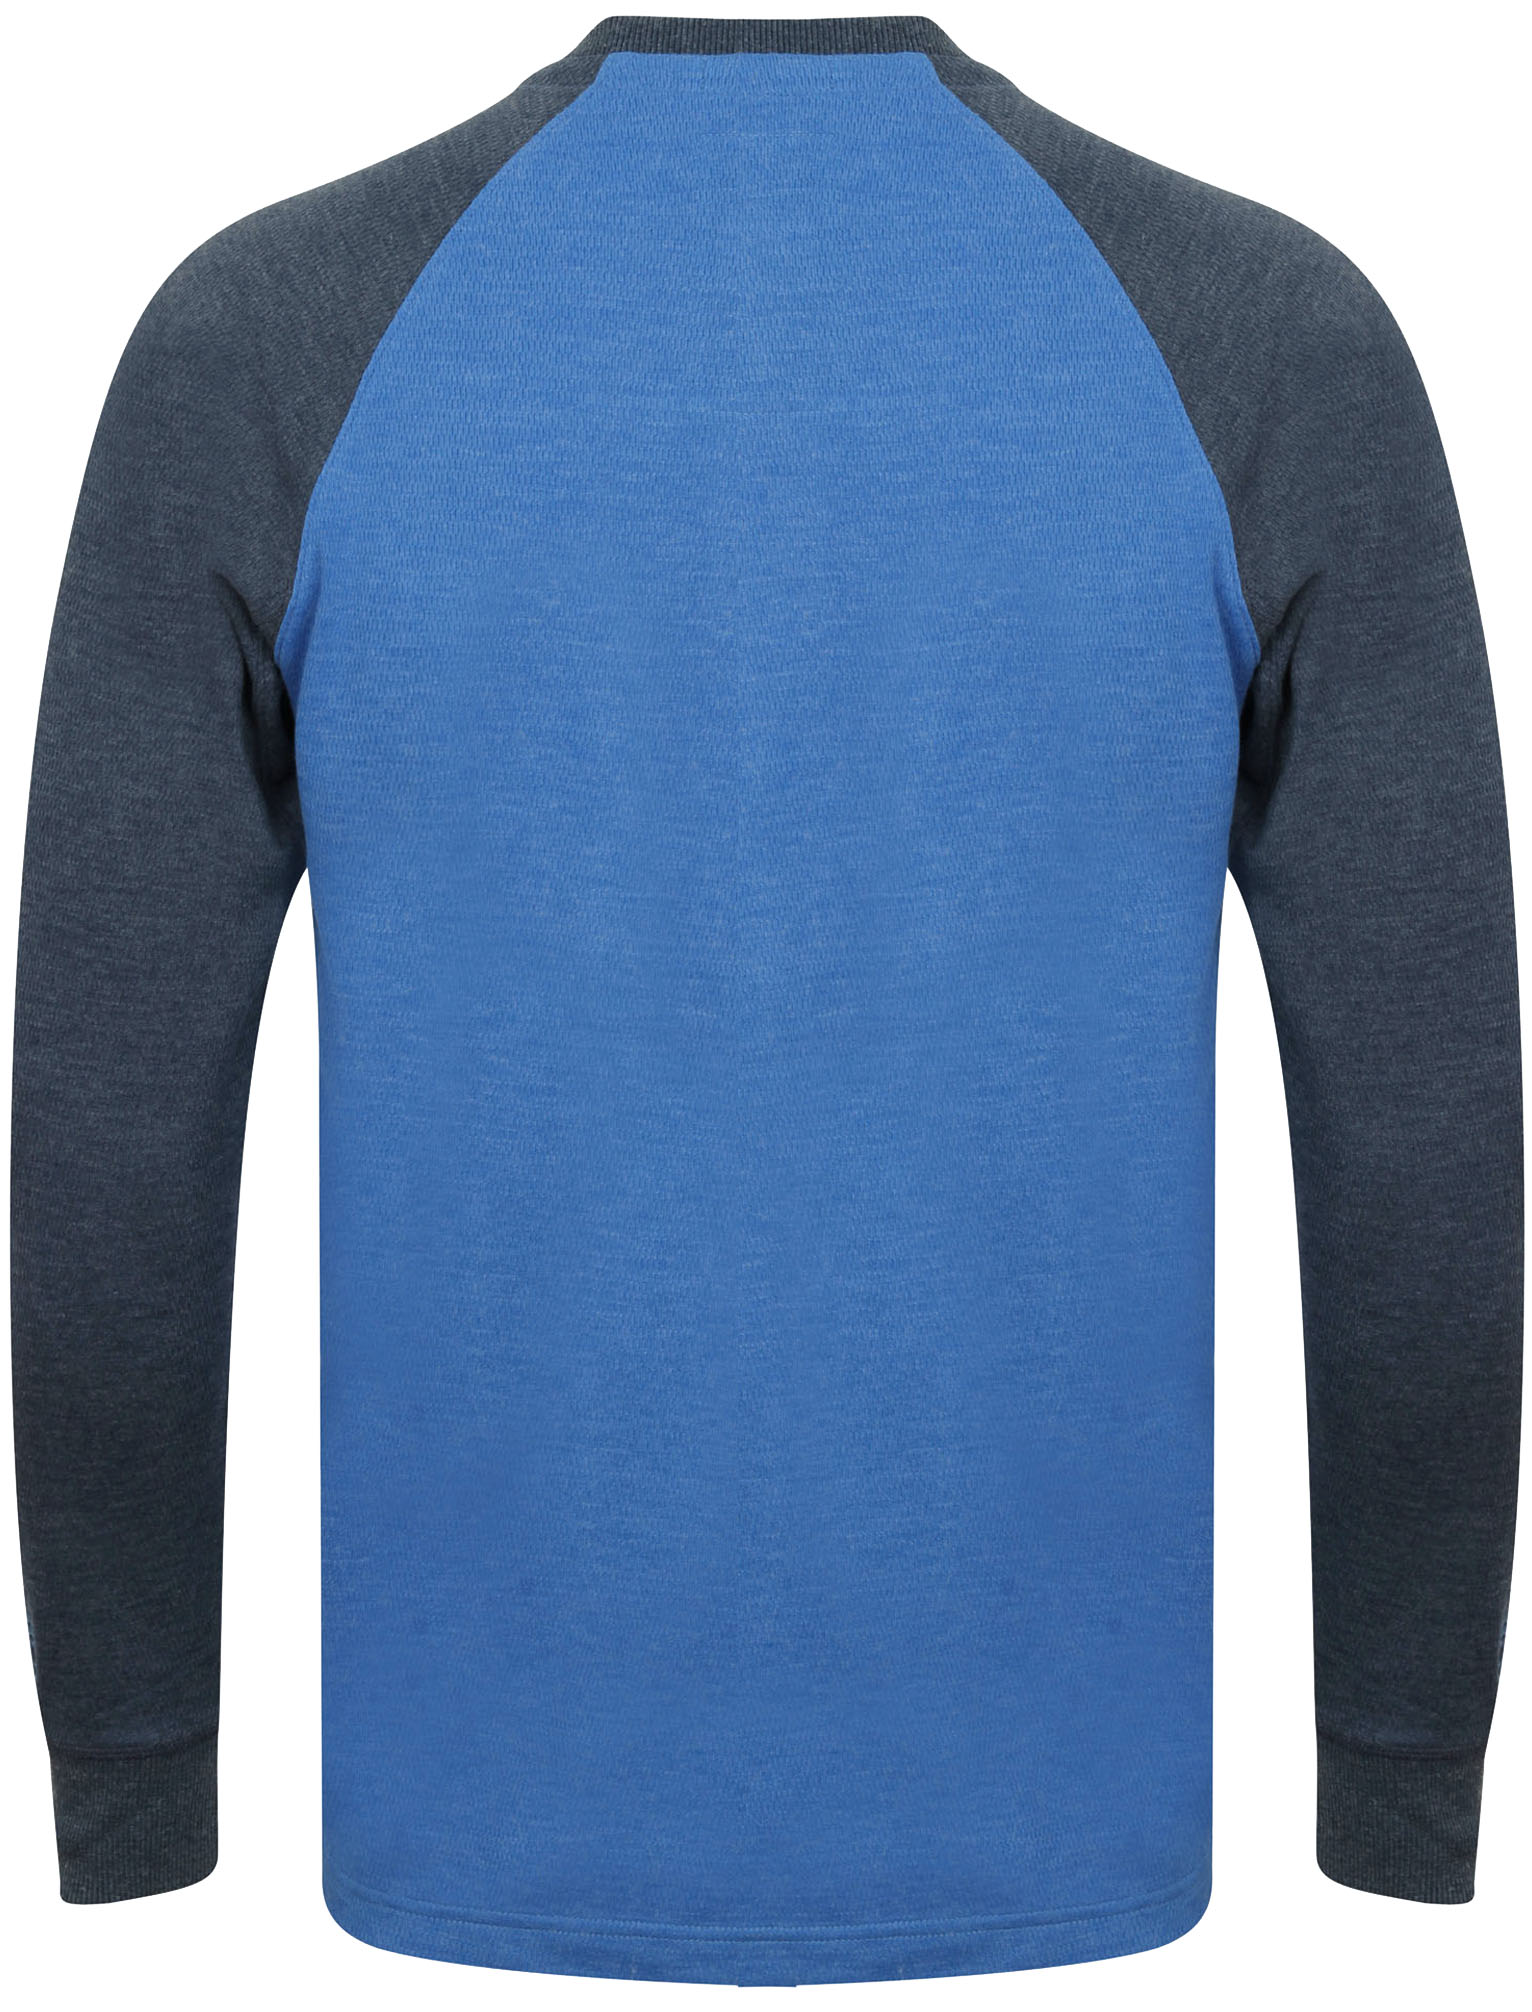 New-Mens-Tokyo-Laundry-Branded-Soft-Jersey-Long-Sleeve-Tops-T-Shirts-Size-S-XL thumbnail 15